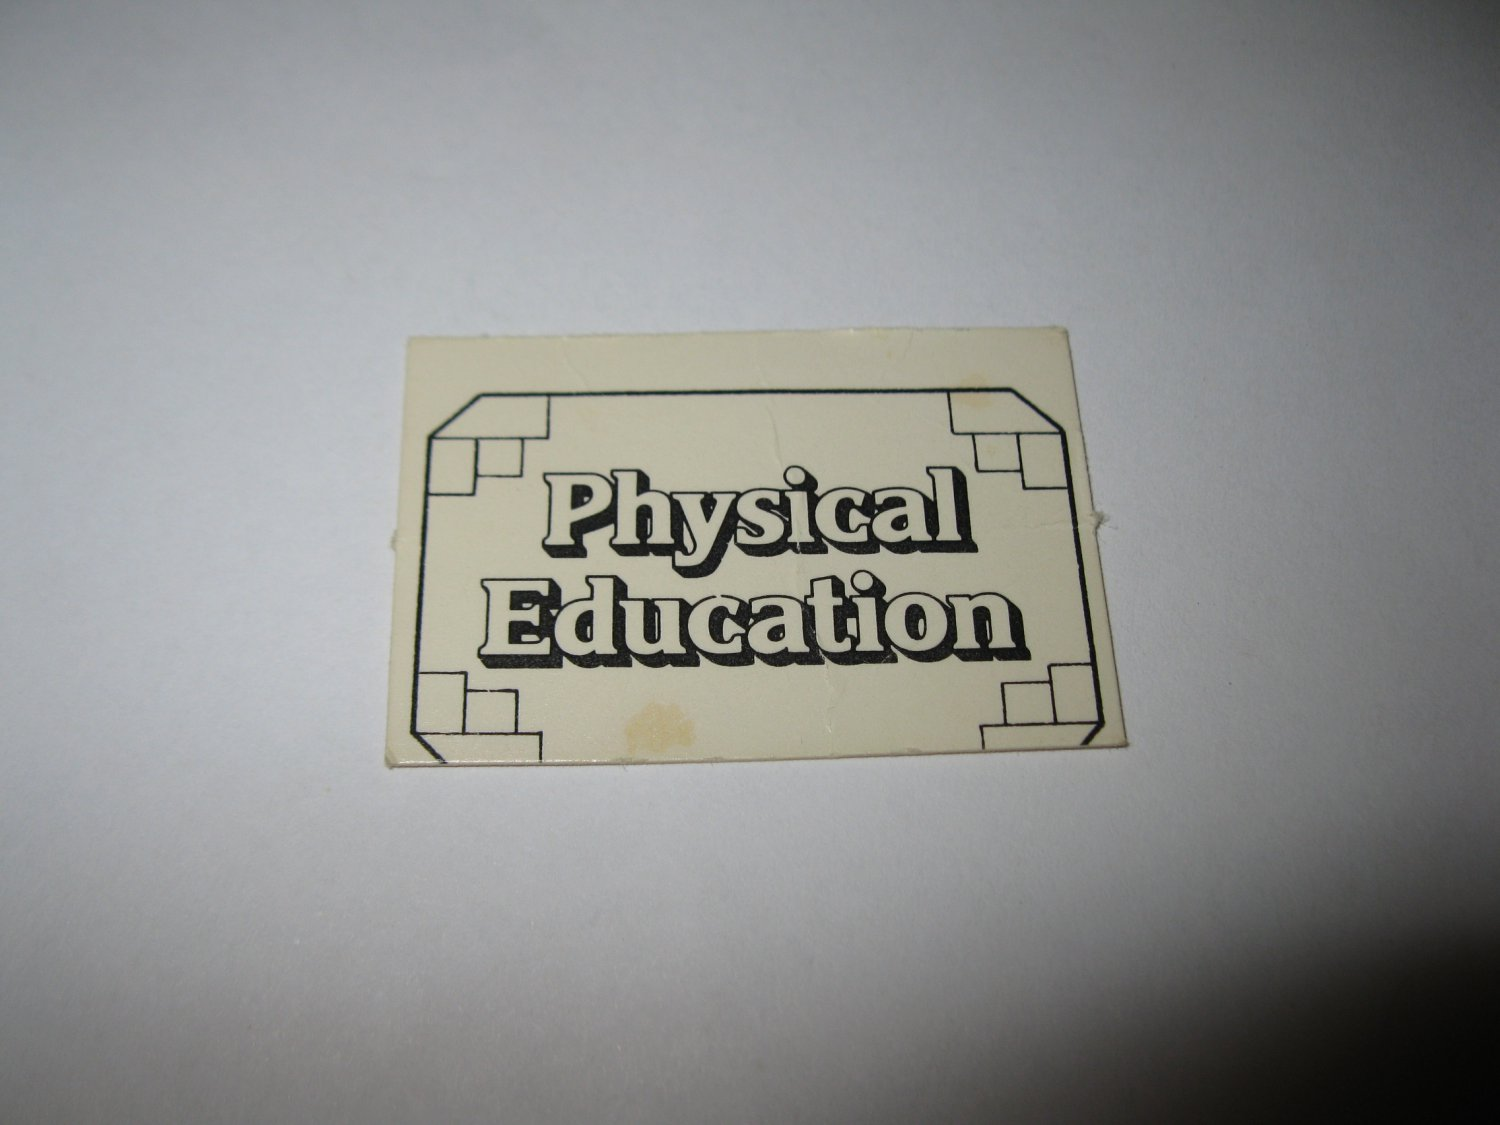 1979 Careers Board Game Piece: Physical Education tab